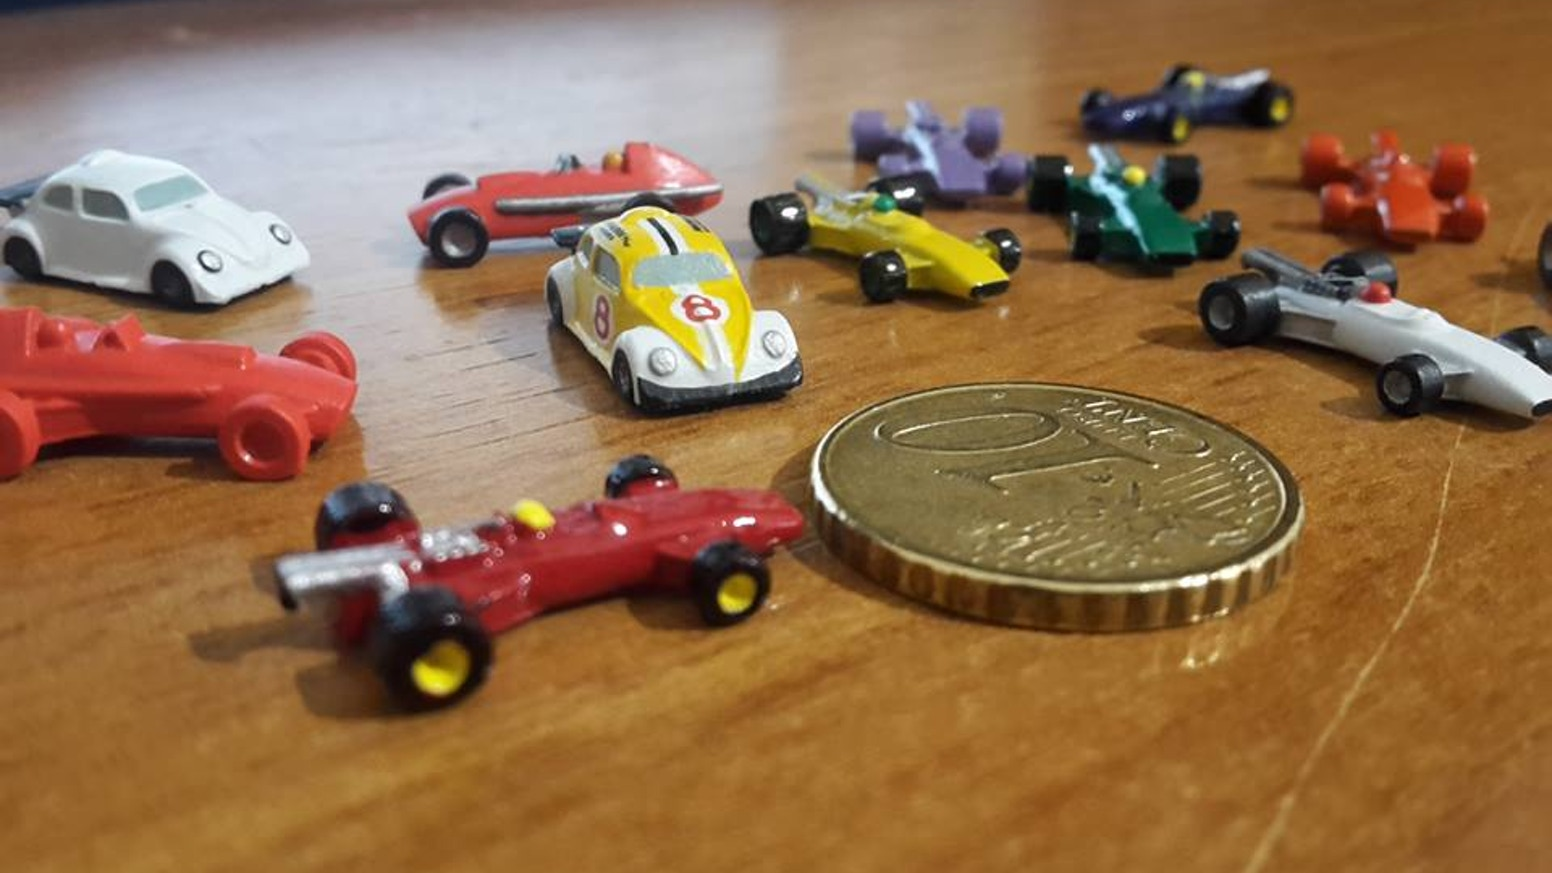 Car Miniatures!  Cool 3d files! Get the files, print your cars, play with all your racing boardgames. Join us on Facebbok page of miniatures entusiasts.